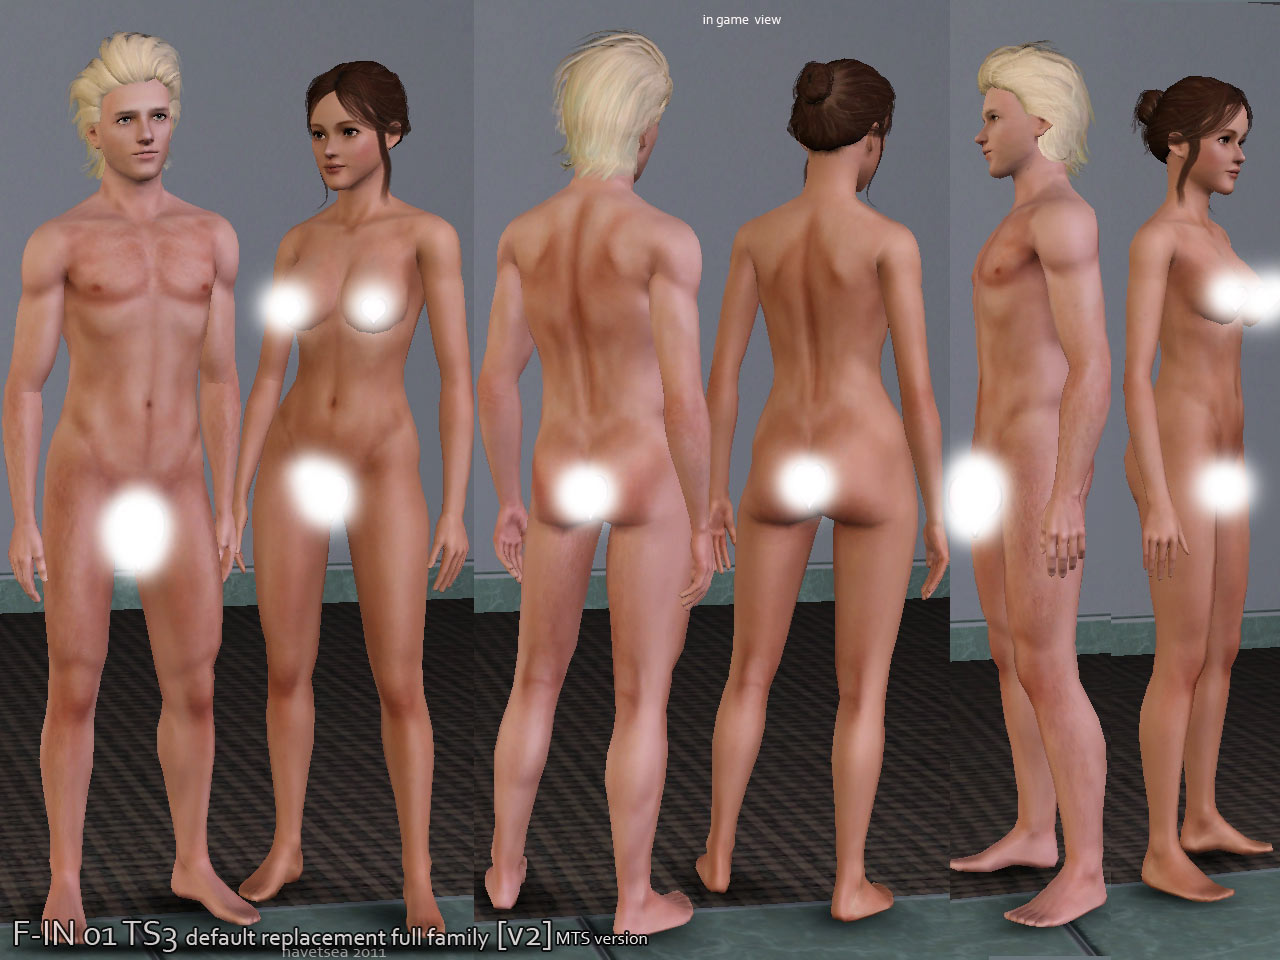 The sims super nude patch naked video